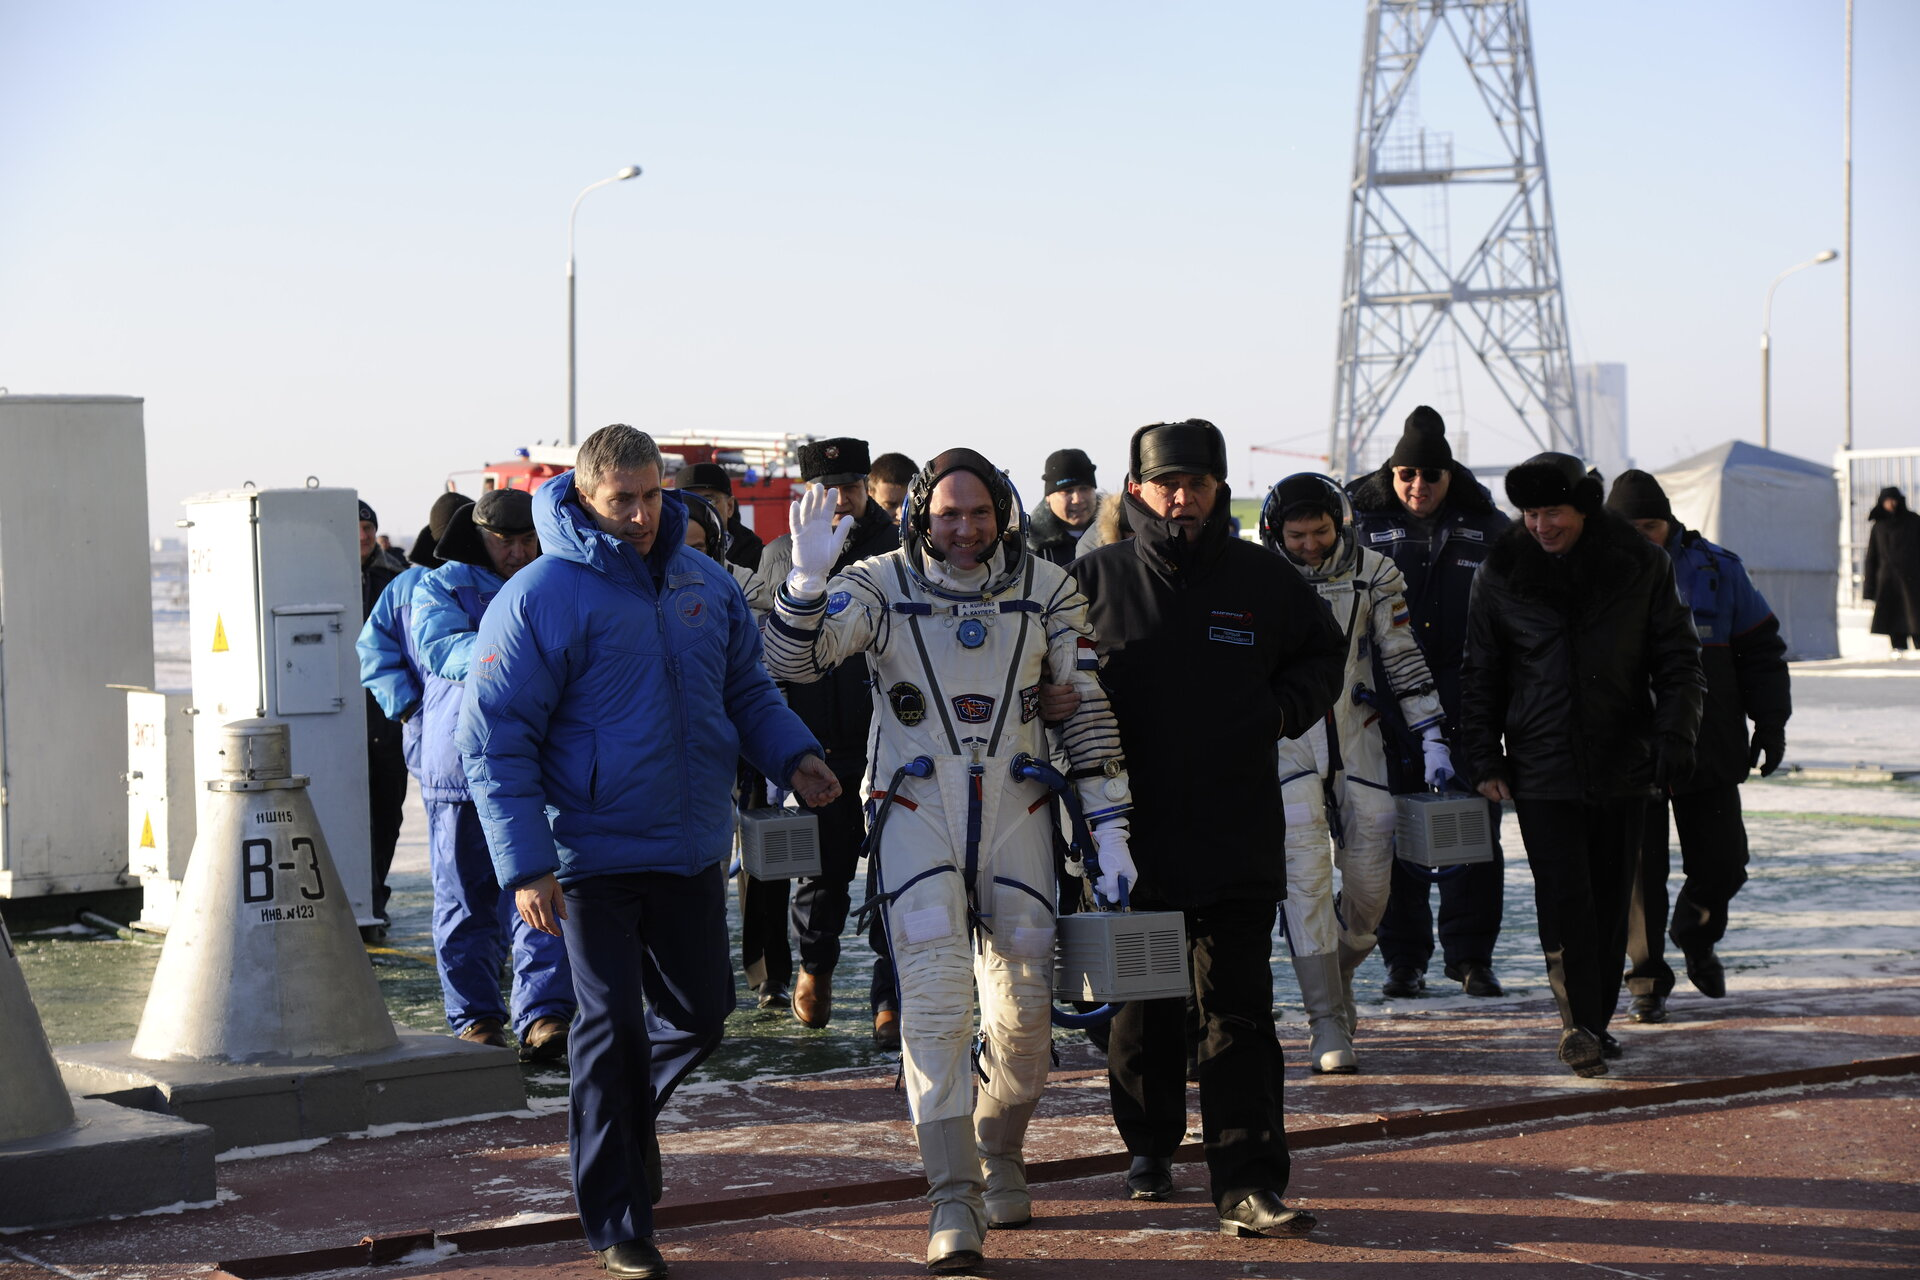 Expeditions 30 and 31 crew members prepare to take the elevator to the top of the Soyuz rocket